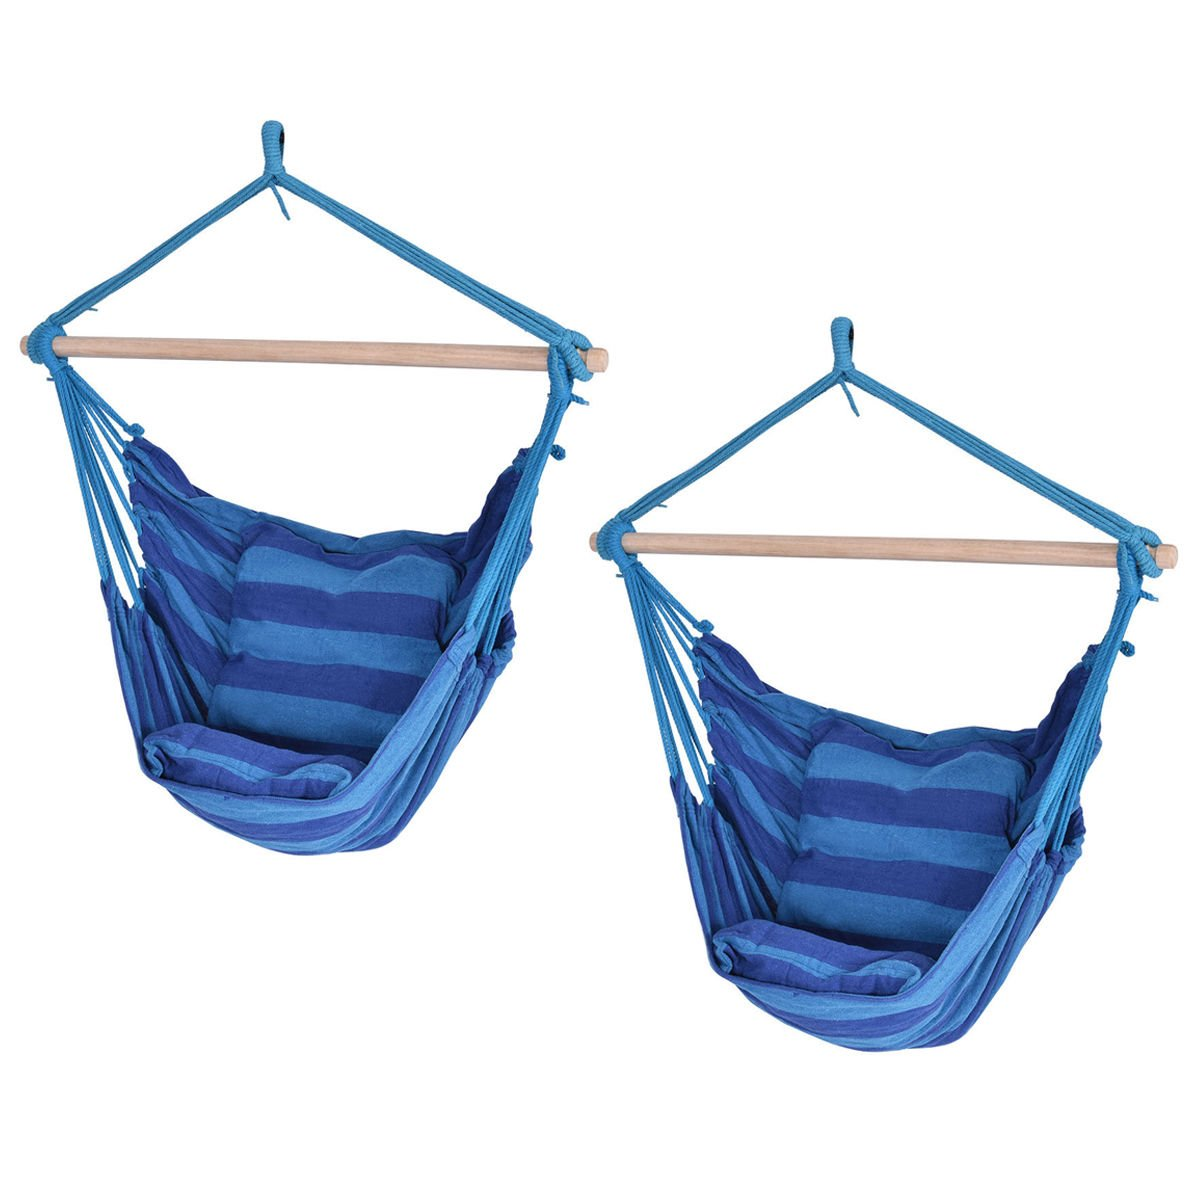 Blue Deluxe Hammock Rope Chair Porch Yard Tree Hanging Air Swing Patio Set of 2 by Caraya